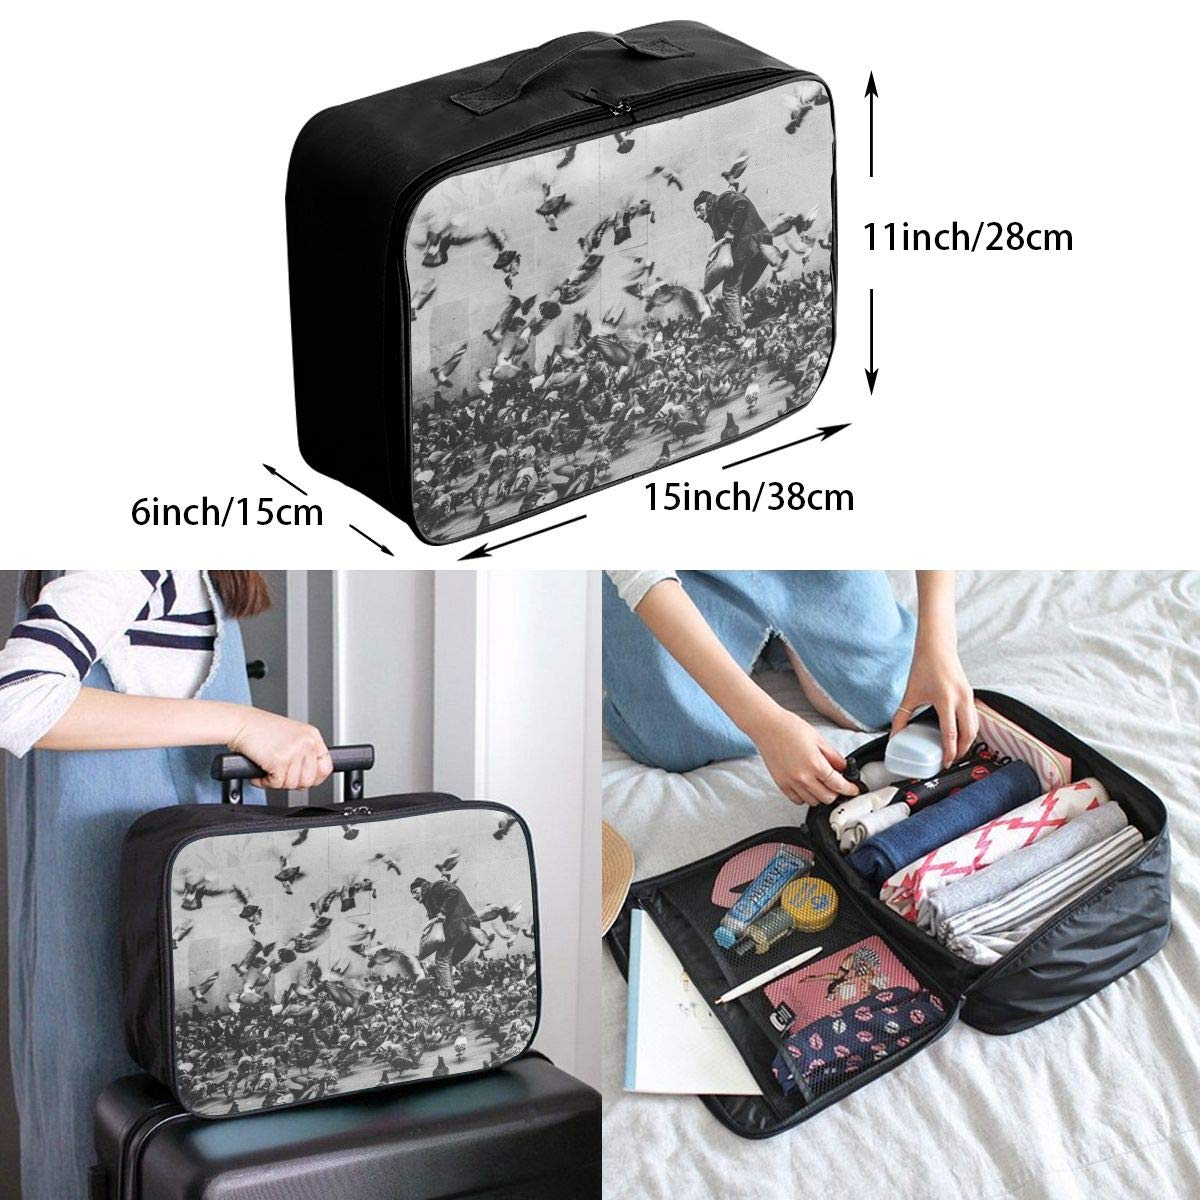 Travel Luggage Duffle Bag Lightweight Portable Handbag Black White People Dove Print Large Capacity Waterproof Foldable Storage Tote